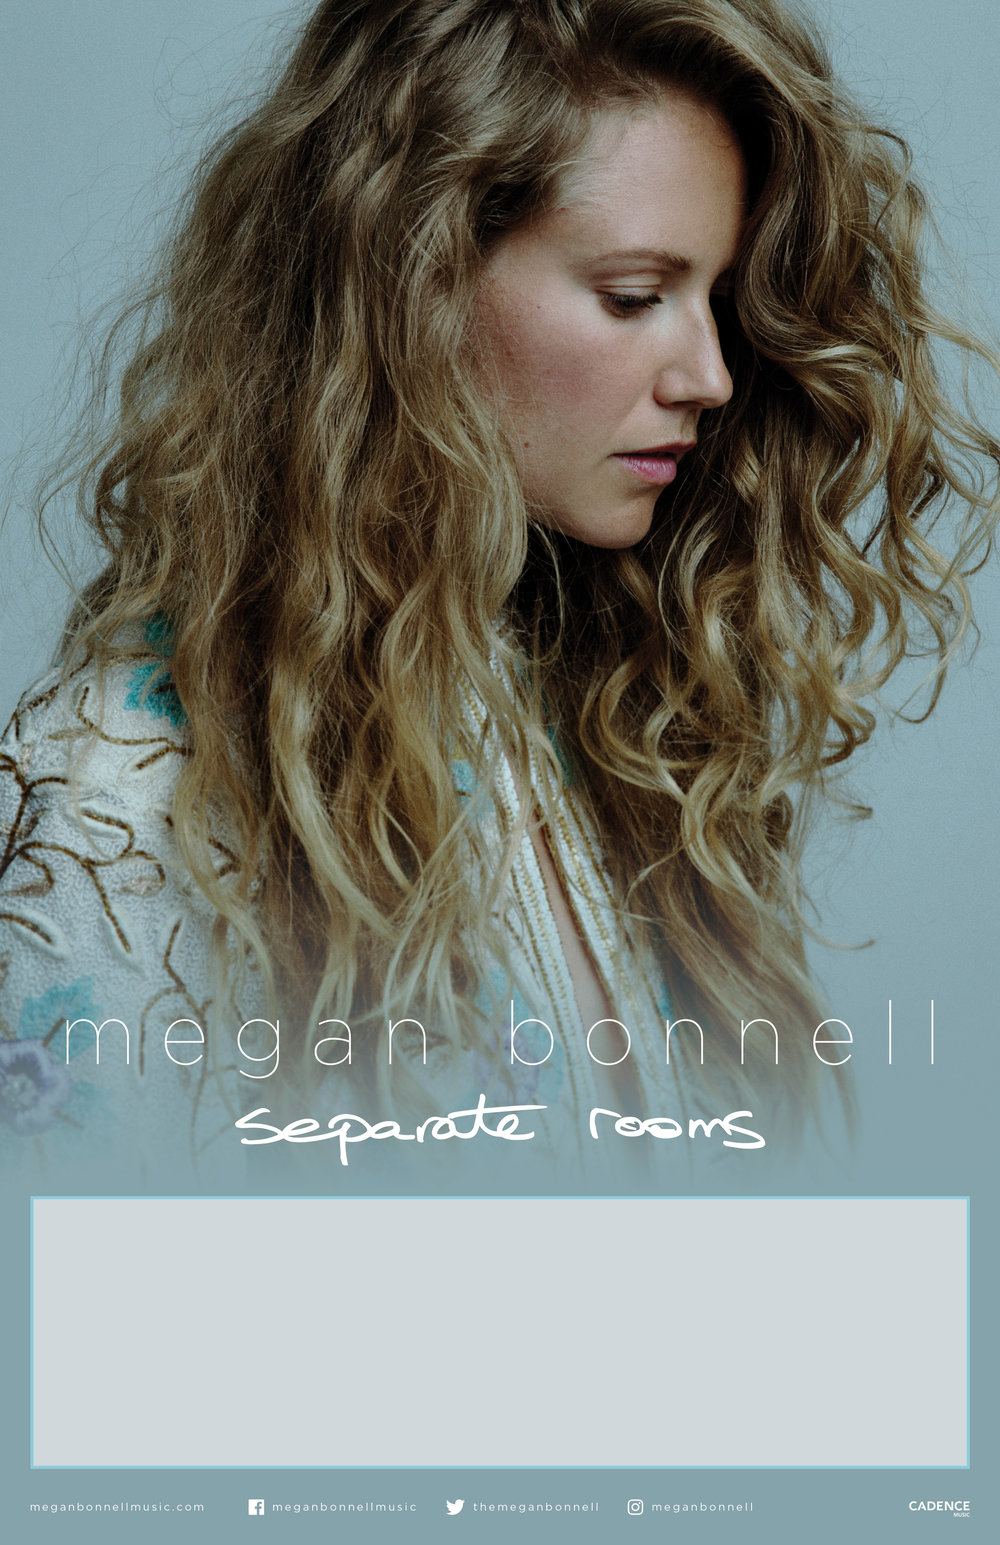 Megan-Bonnell-Separate-Rooms-11in-x-17in-Tour-Poster-PROOF-1.jpg